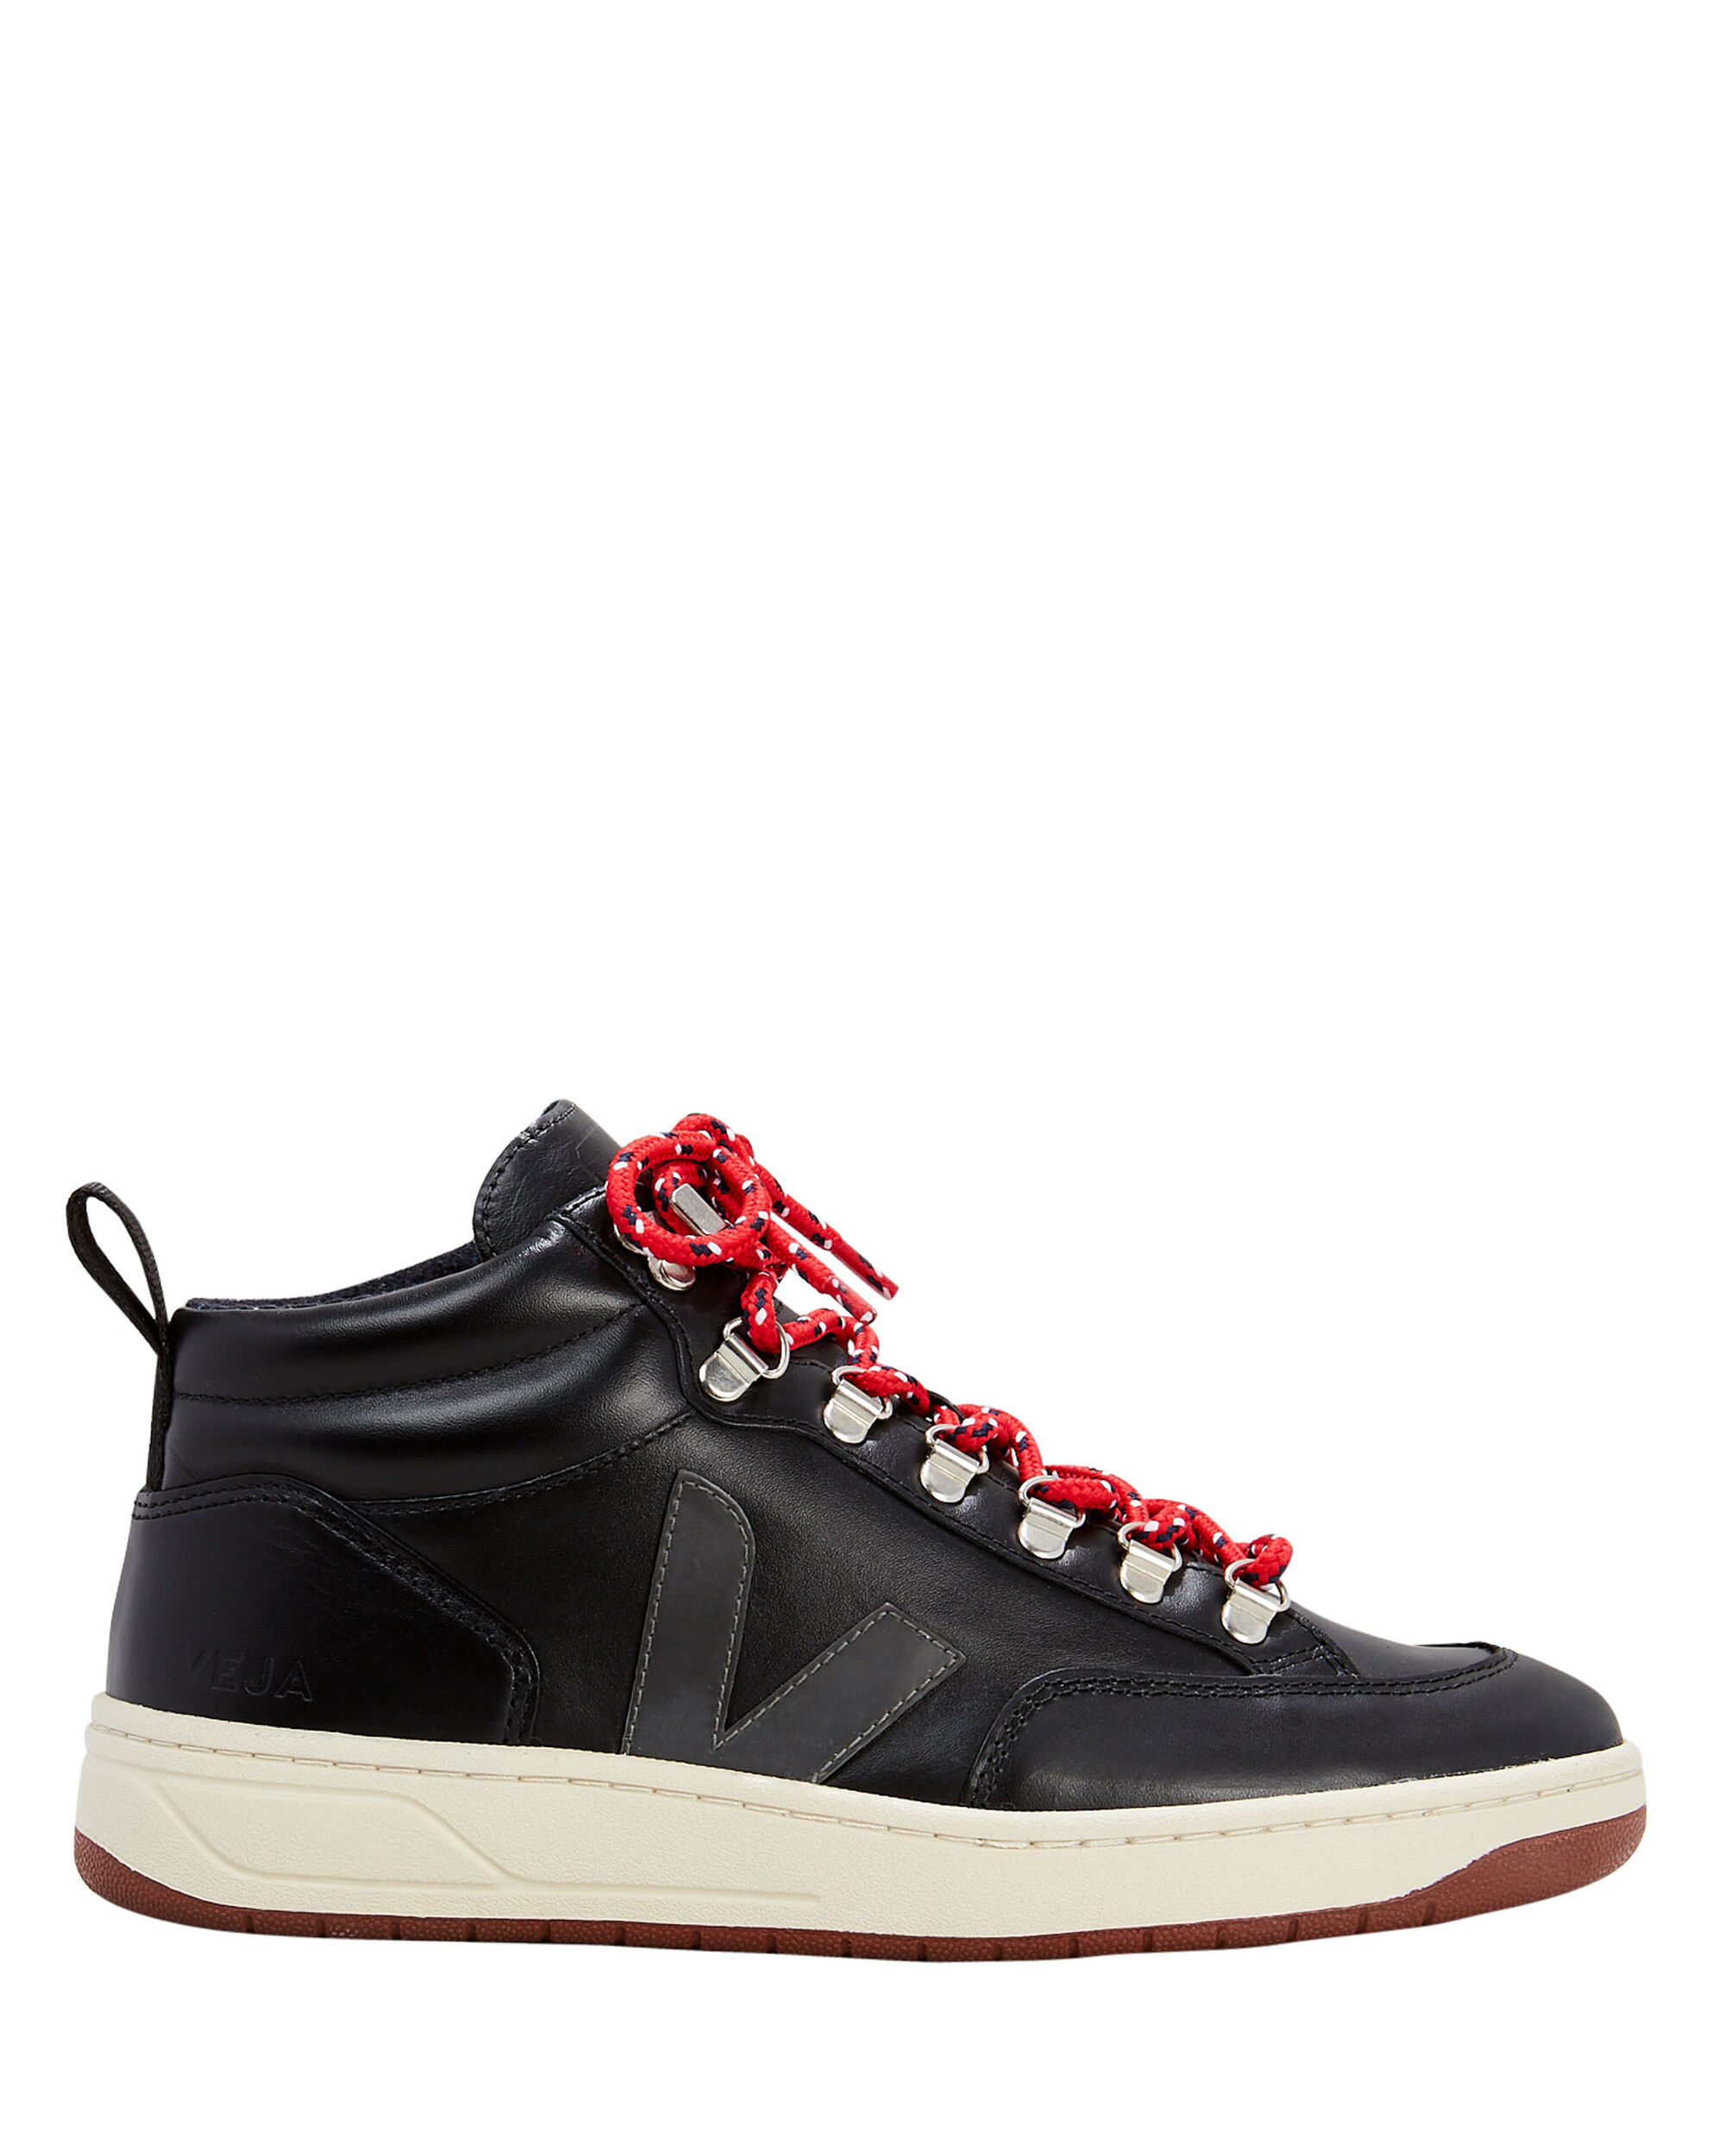 Roraima Mid-Top Sneakers, BLACK, hi-res